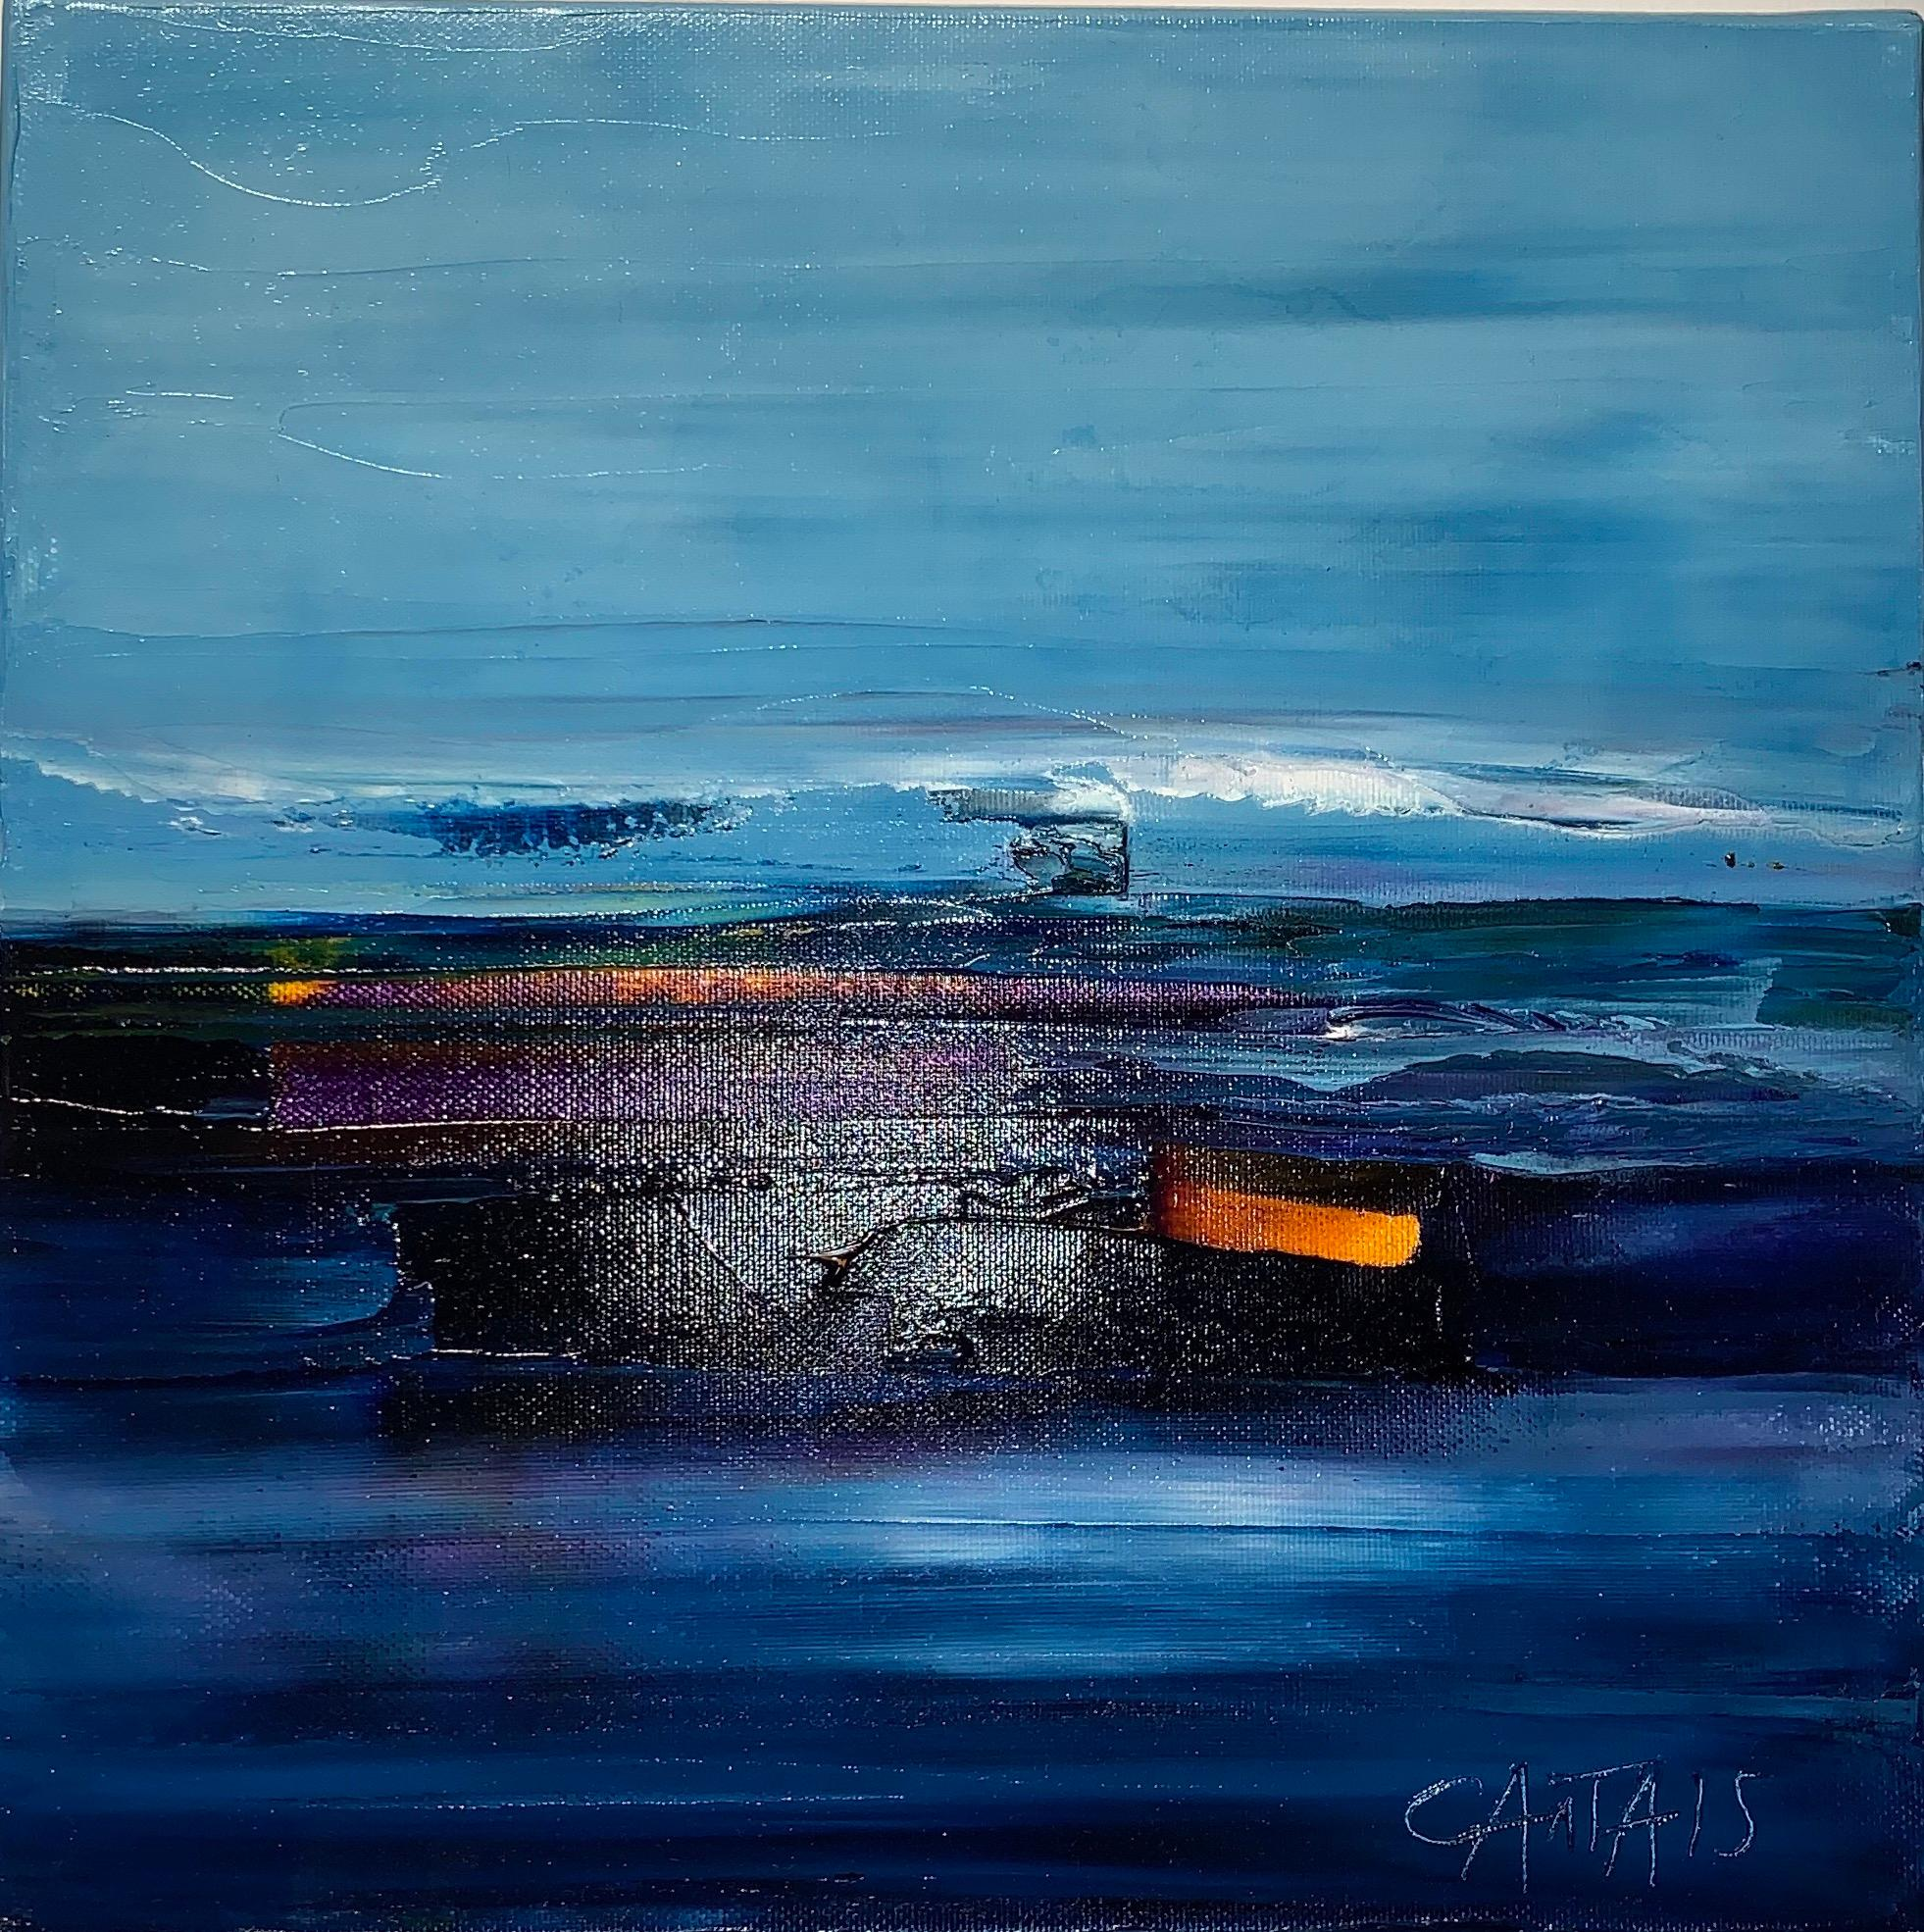 Just Travel - Bruno Cantais - Oil on canvas - Modern art - 21 th century